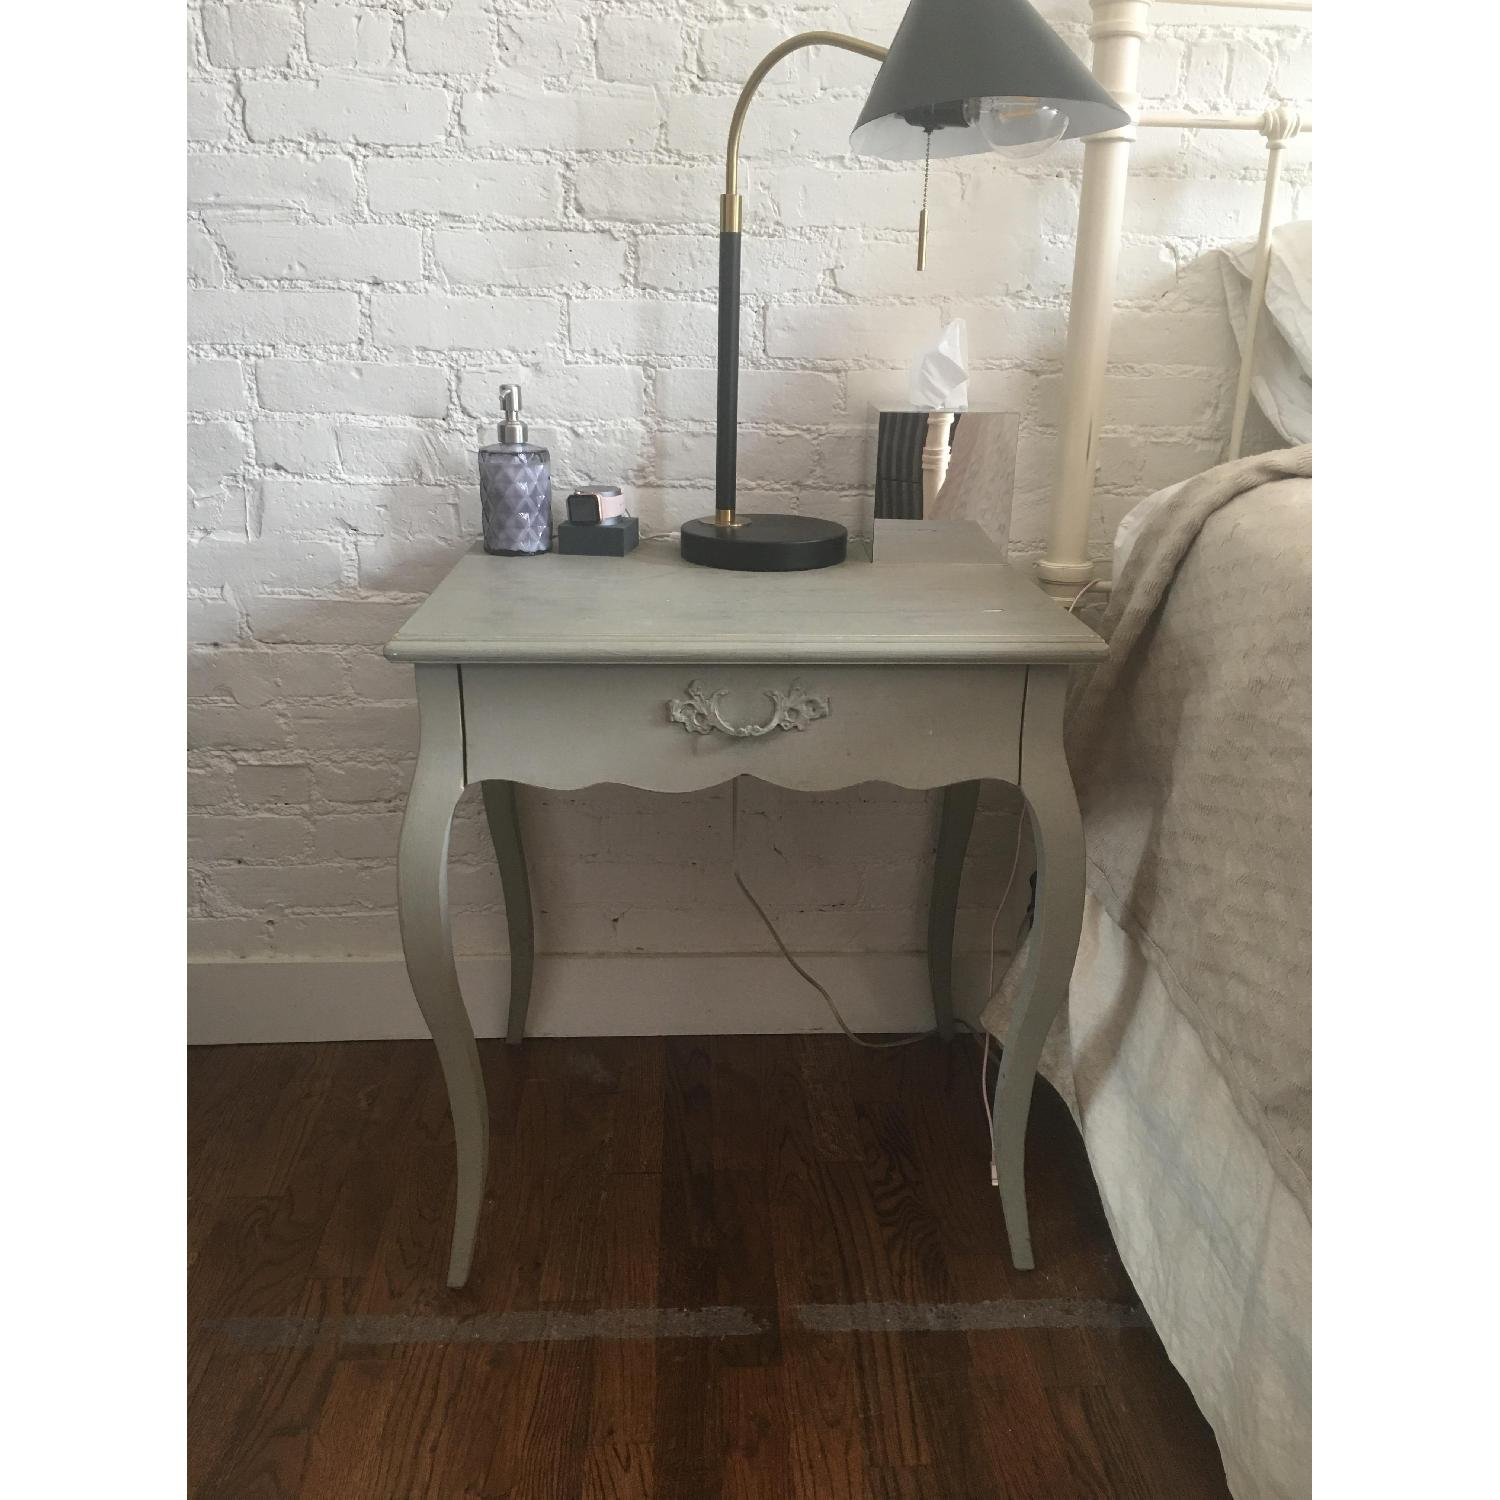 ABC Carpet & Home Urbn Side Table - image-1